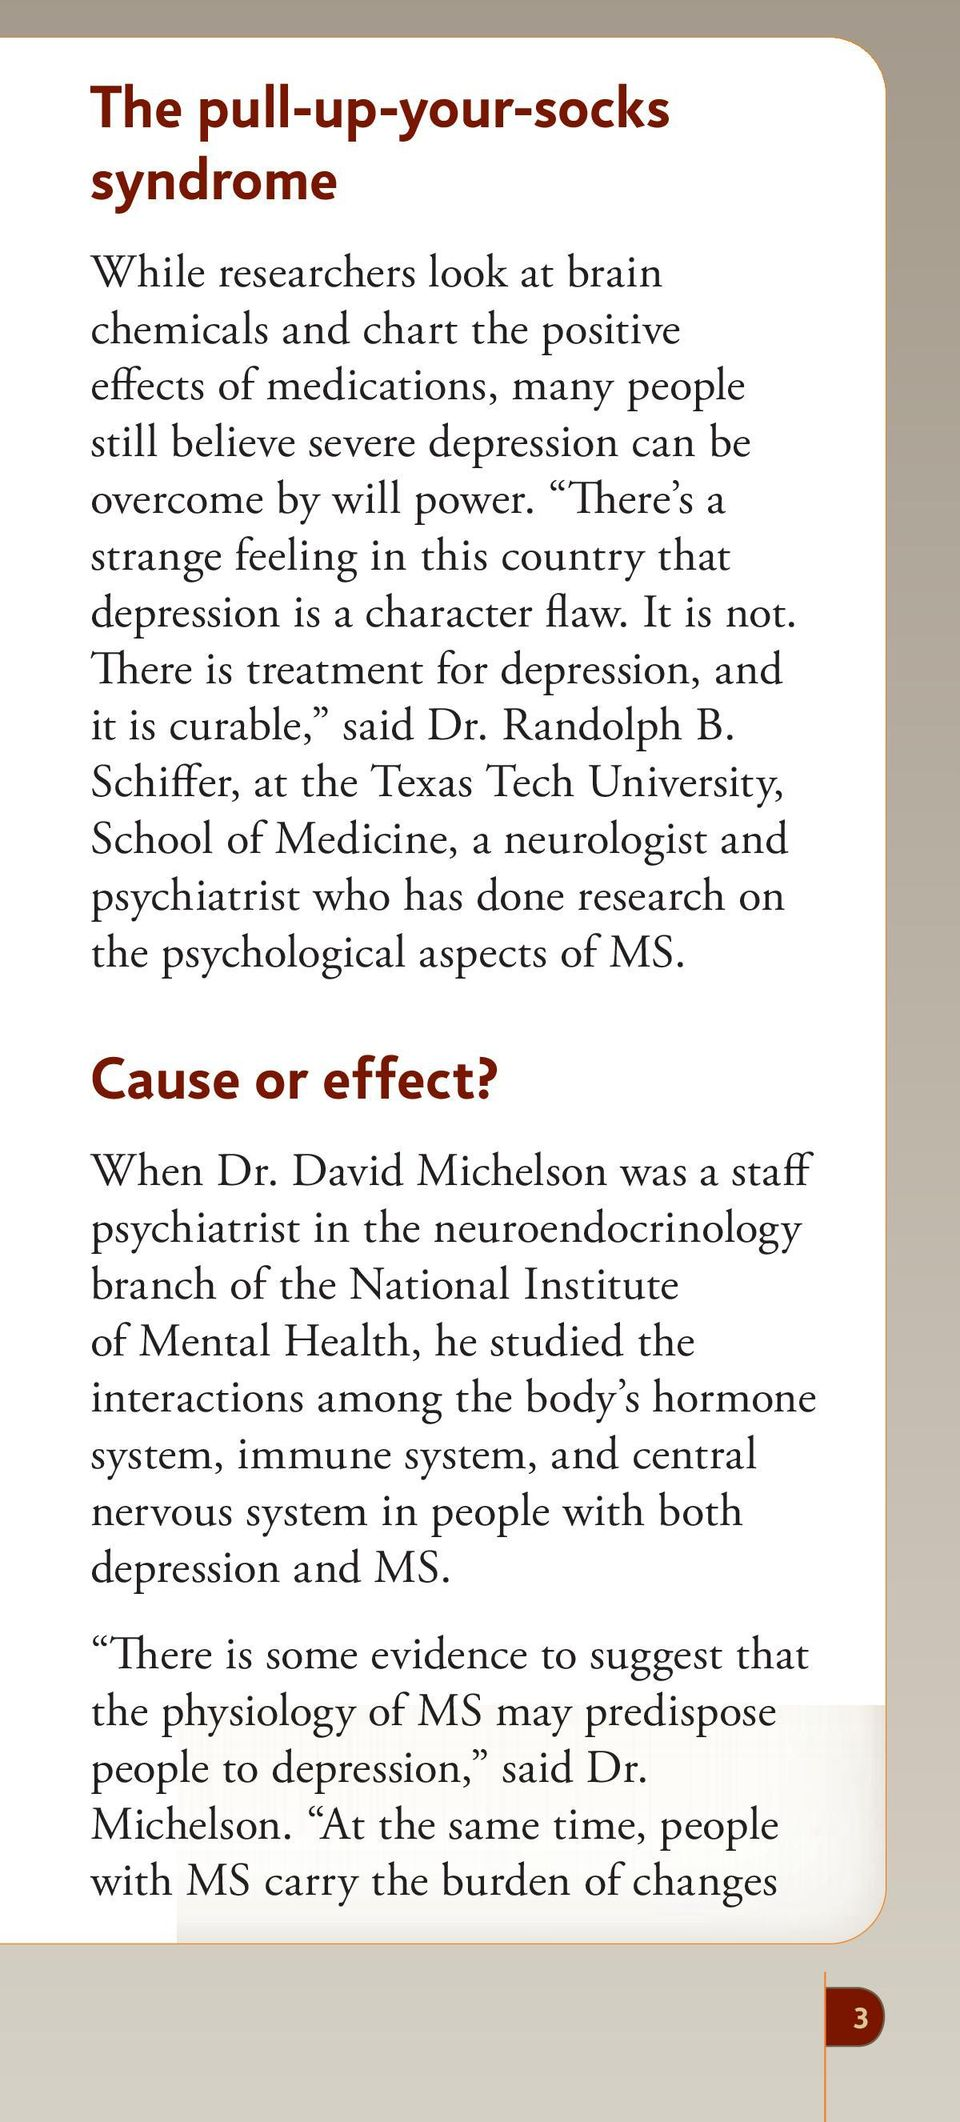 Schiffer, at the Texas Tech University, School of Medicine, a neurologist and psychiatrist who has done research on the psychological aspects of MS. Cause or effect? When Dr.